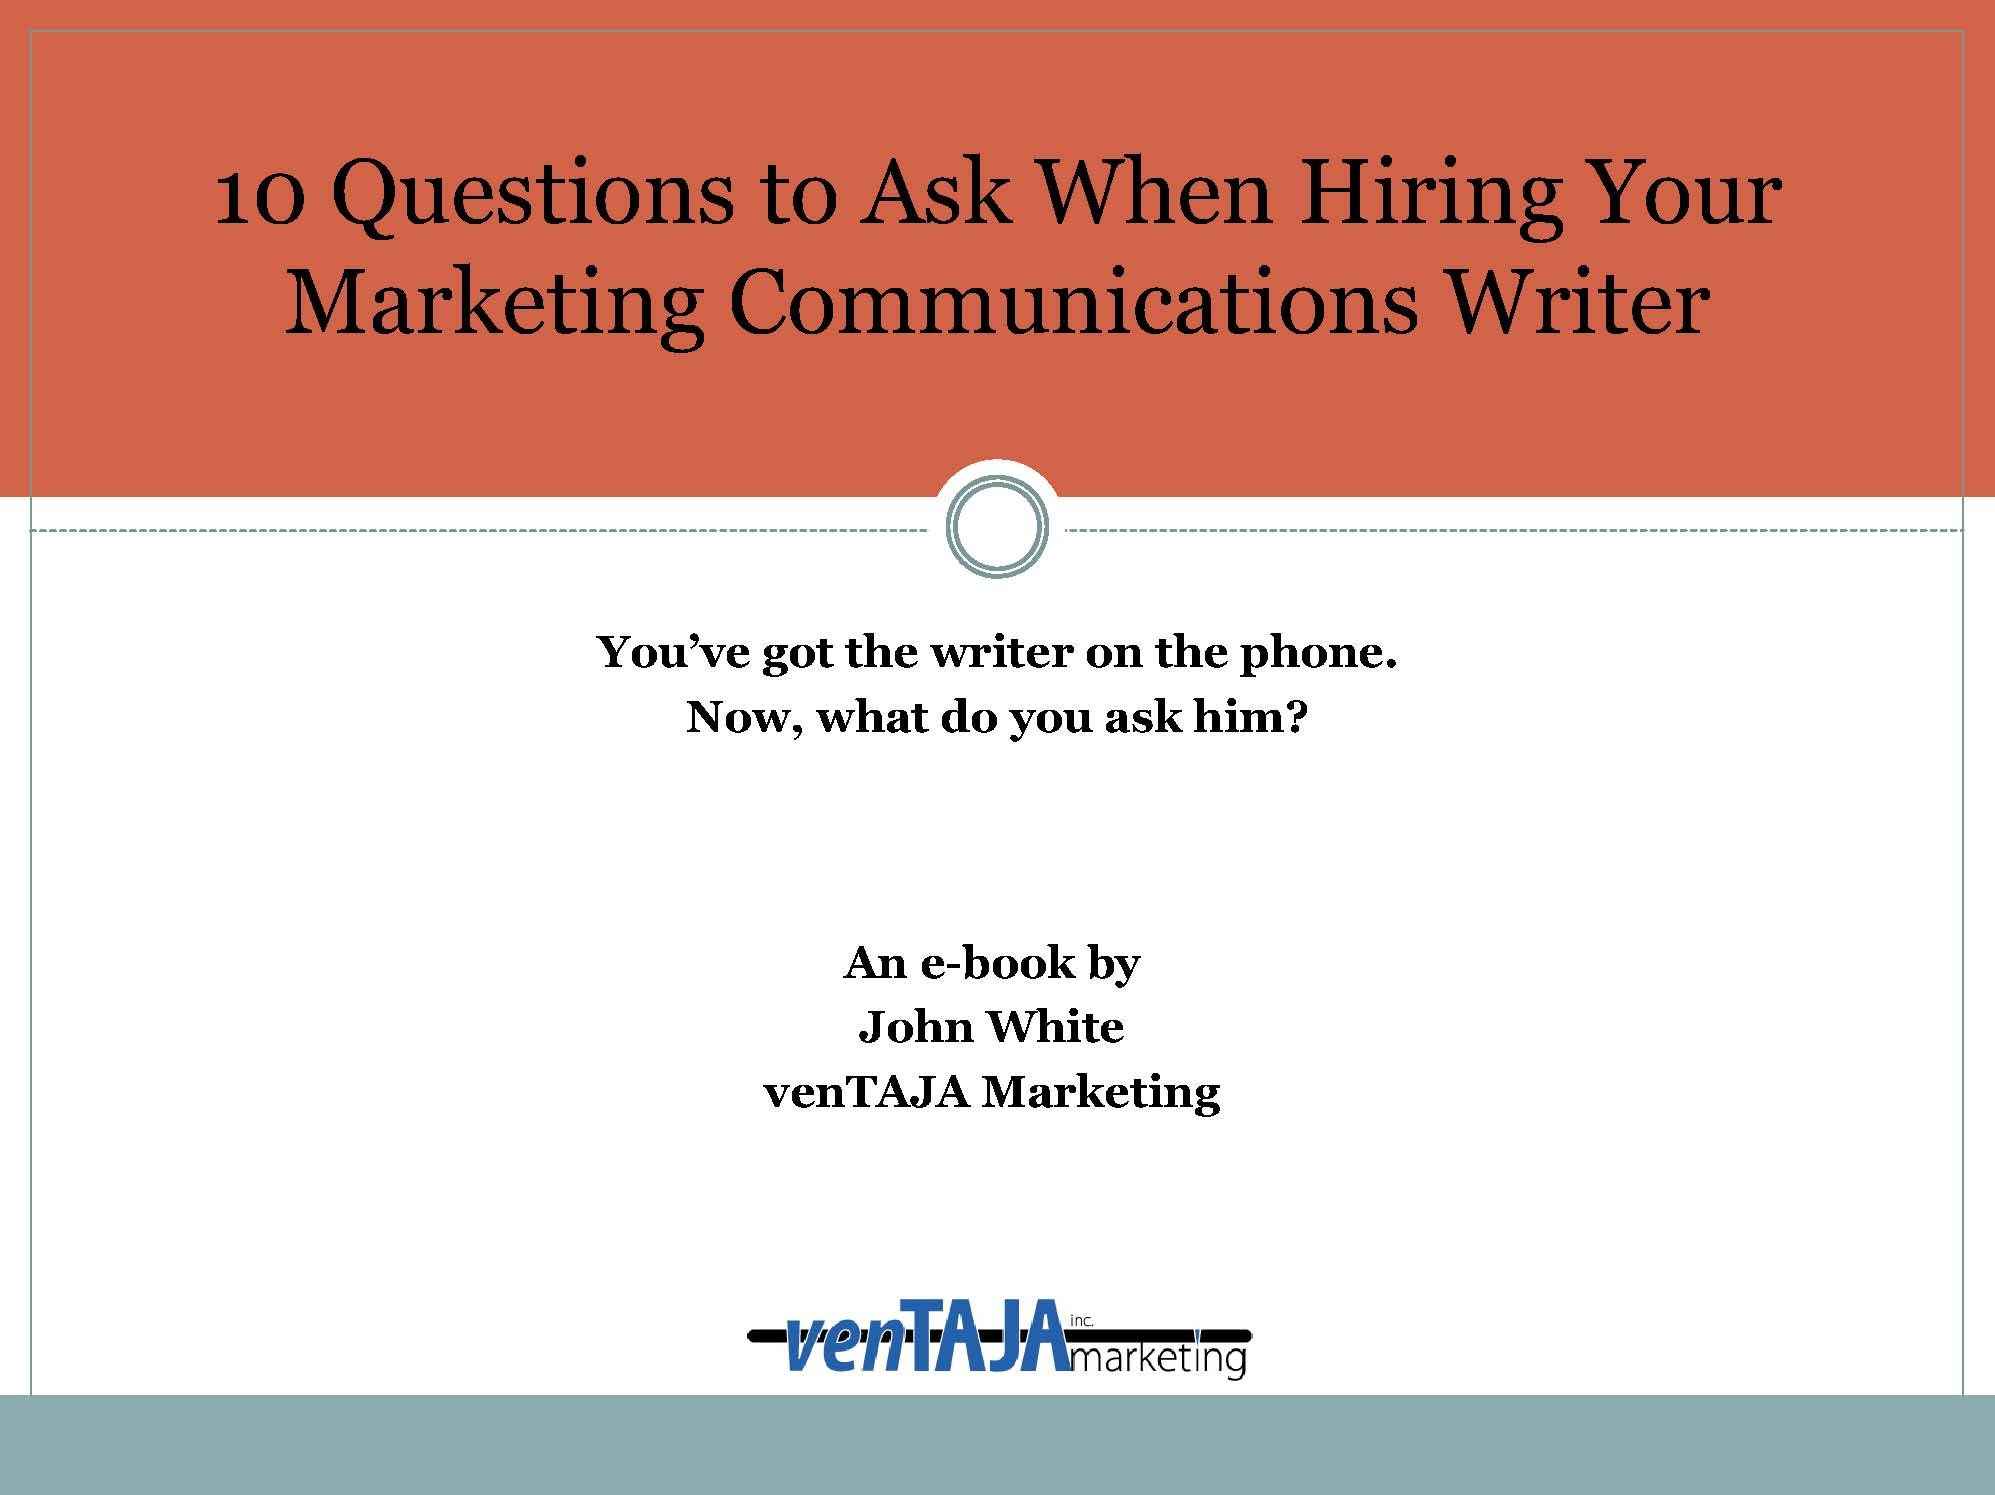 eBook - 10 Questions to Ask When Hiring Your Marketing Communications Writer